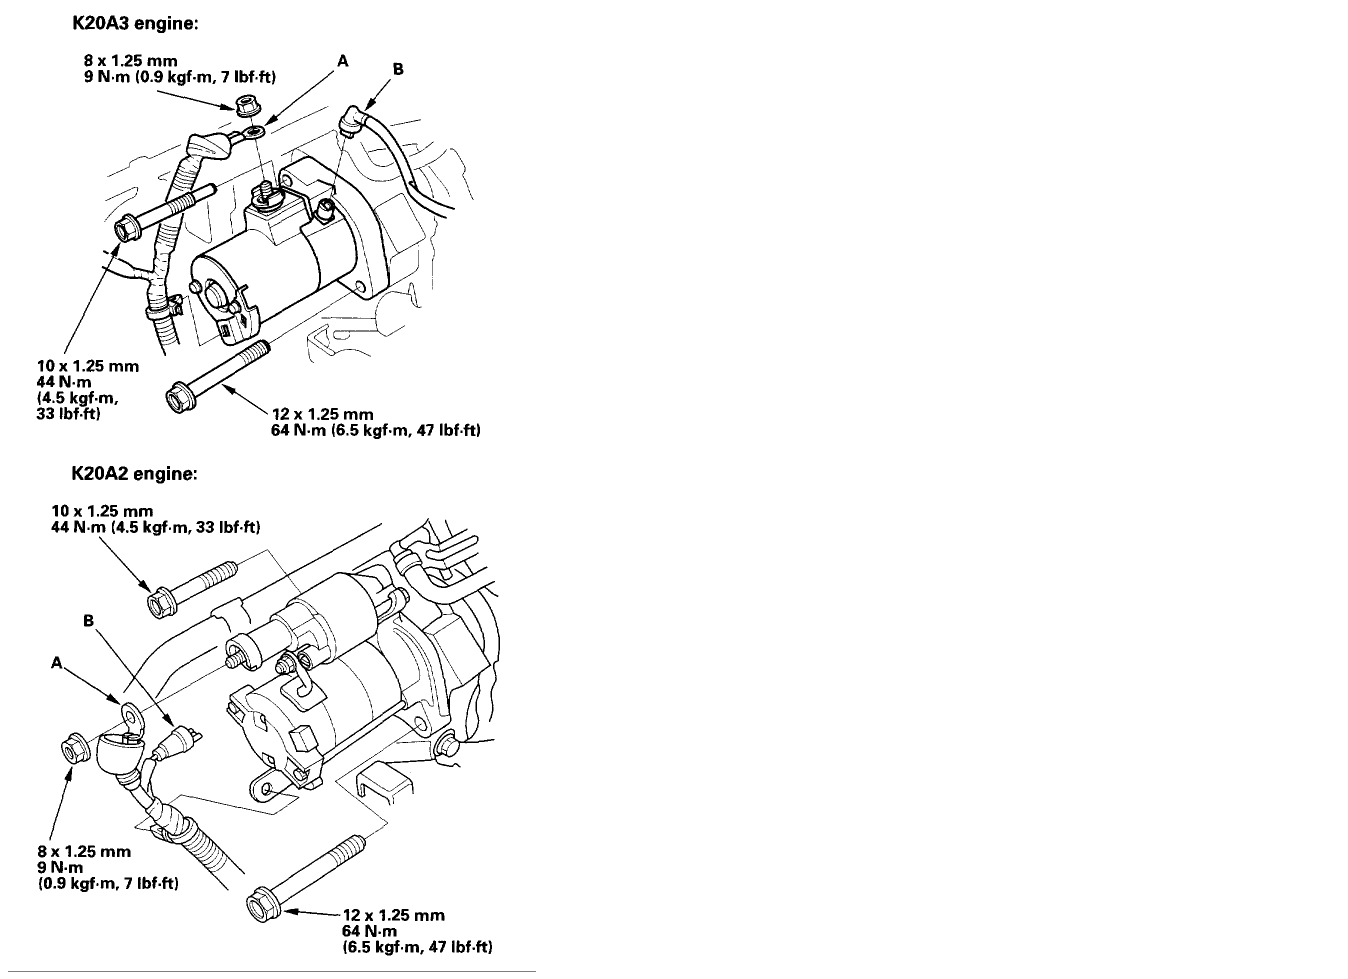 Acura Rsx Engine Wiring Diagram Wiring Diagrams And Schematics – Rsx Wiring Diagram